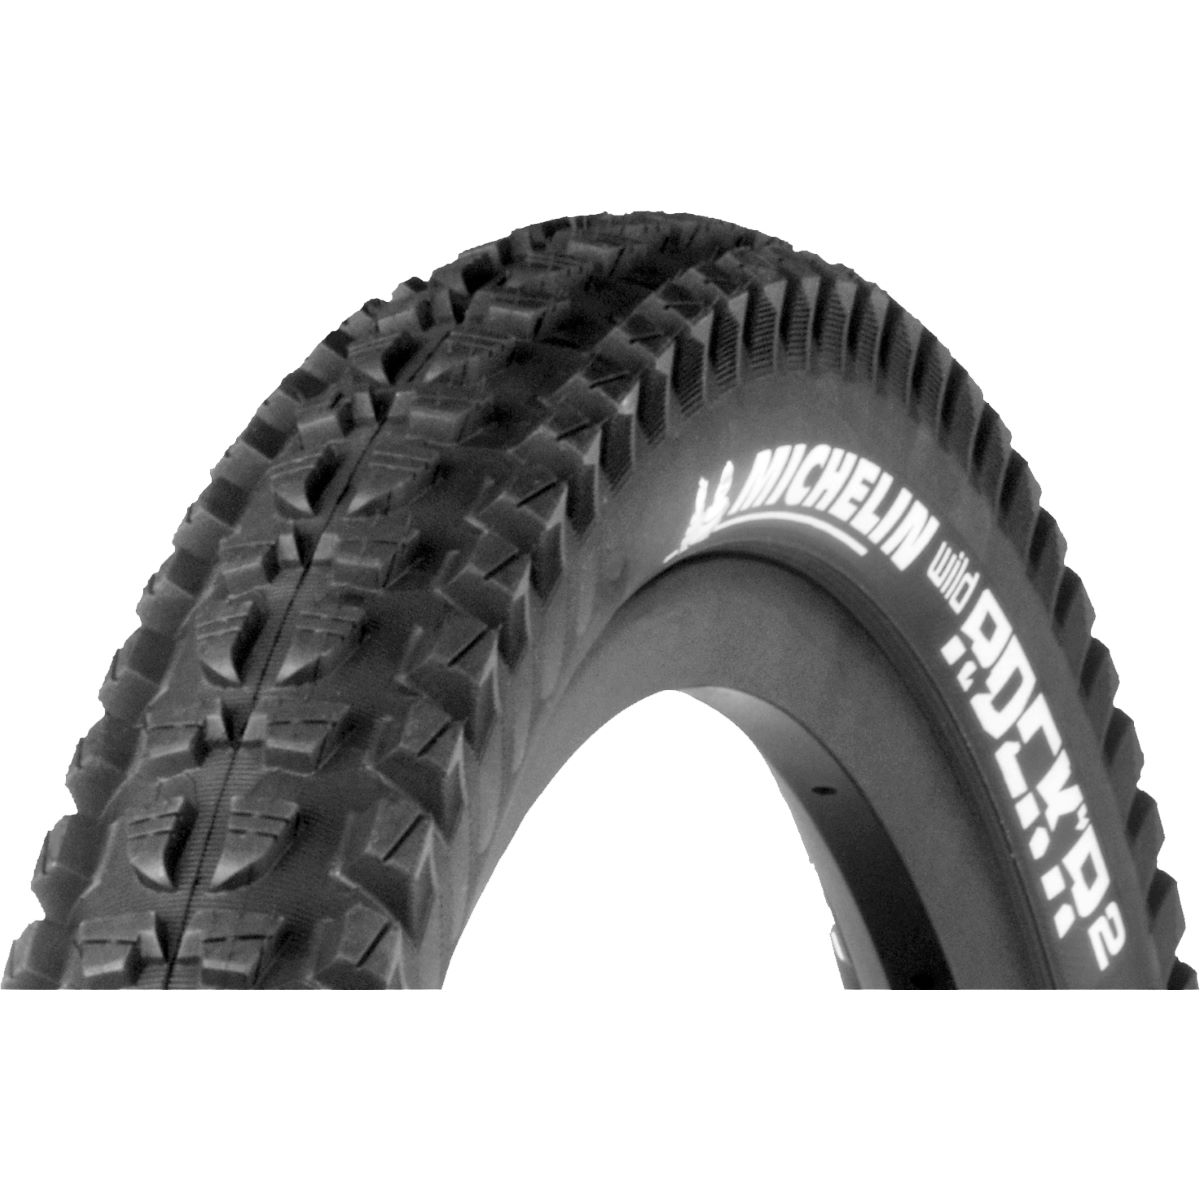 Pneu VTT Michelin Wild Rock'r2 Advanced Reinforced Magi-X - Noir